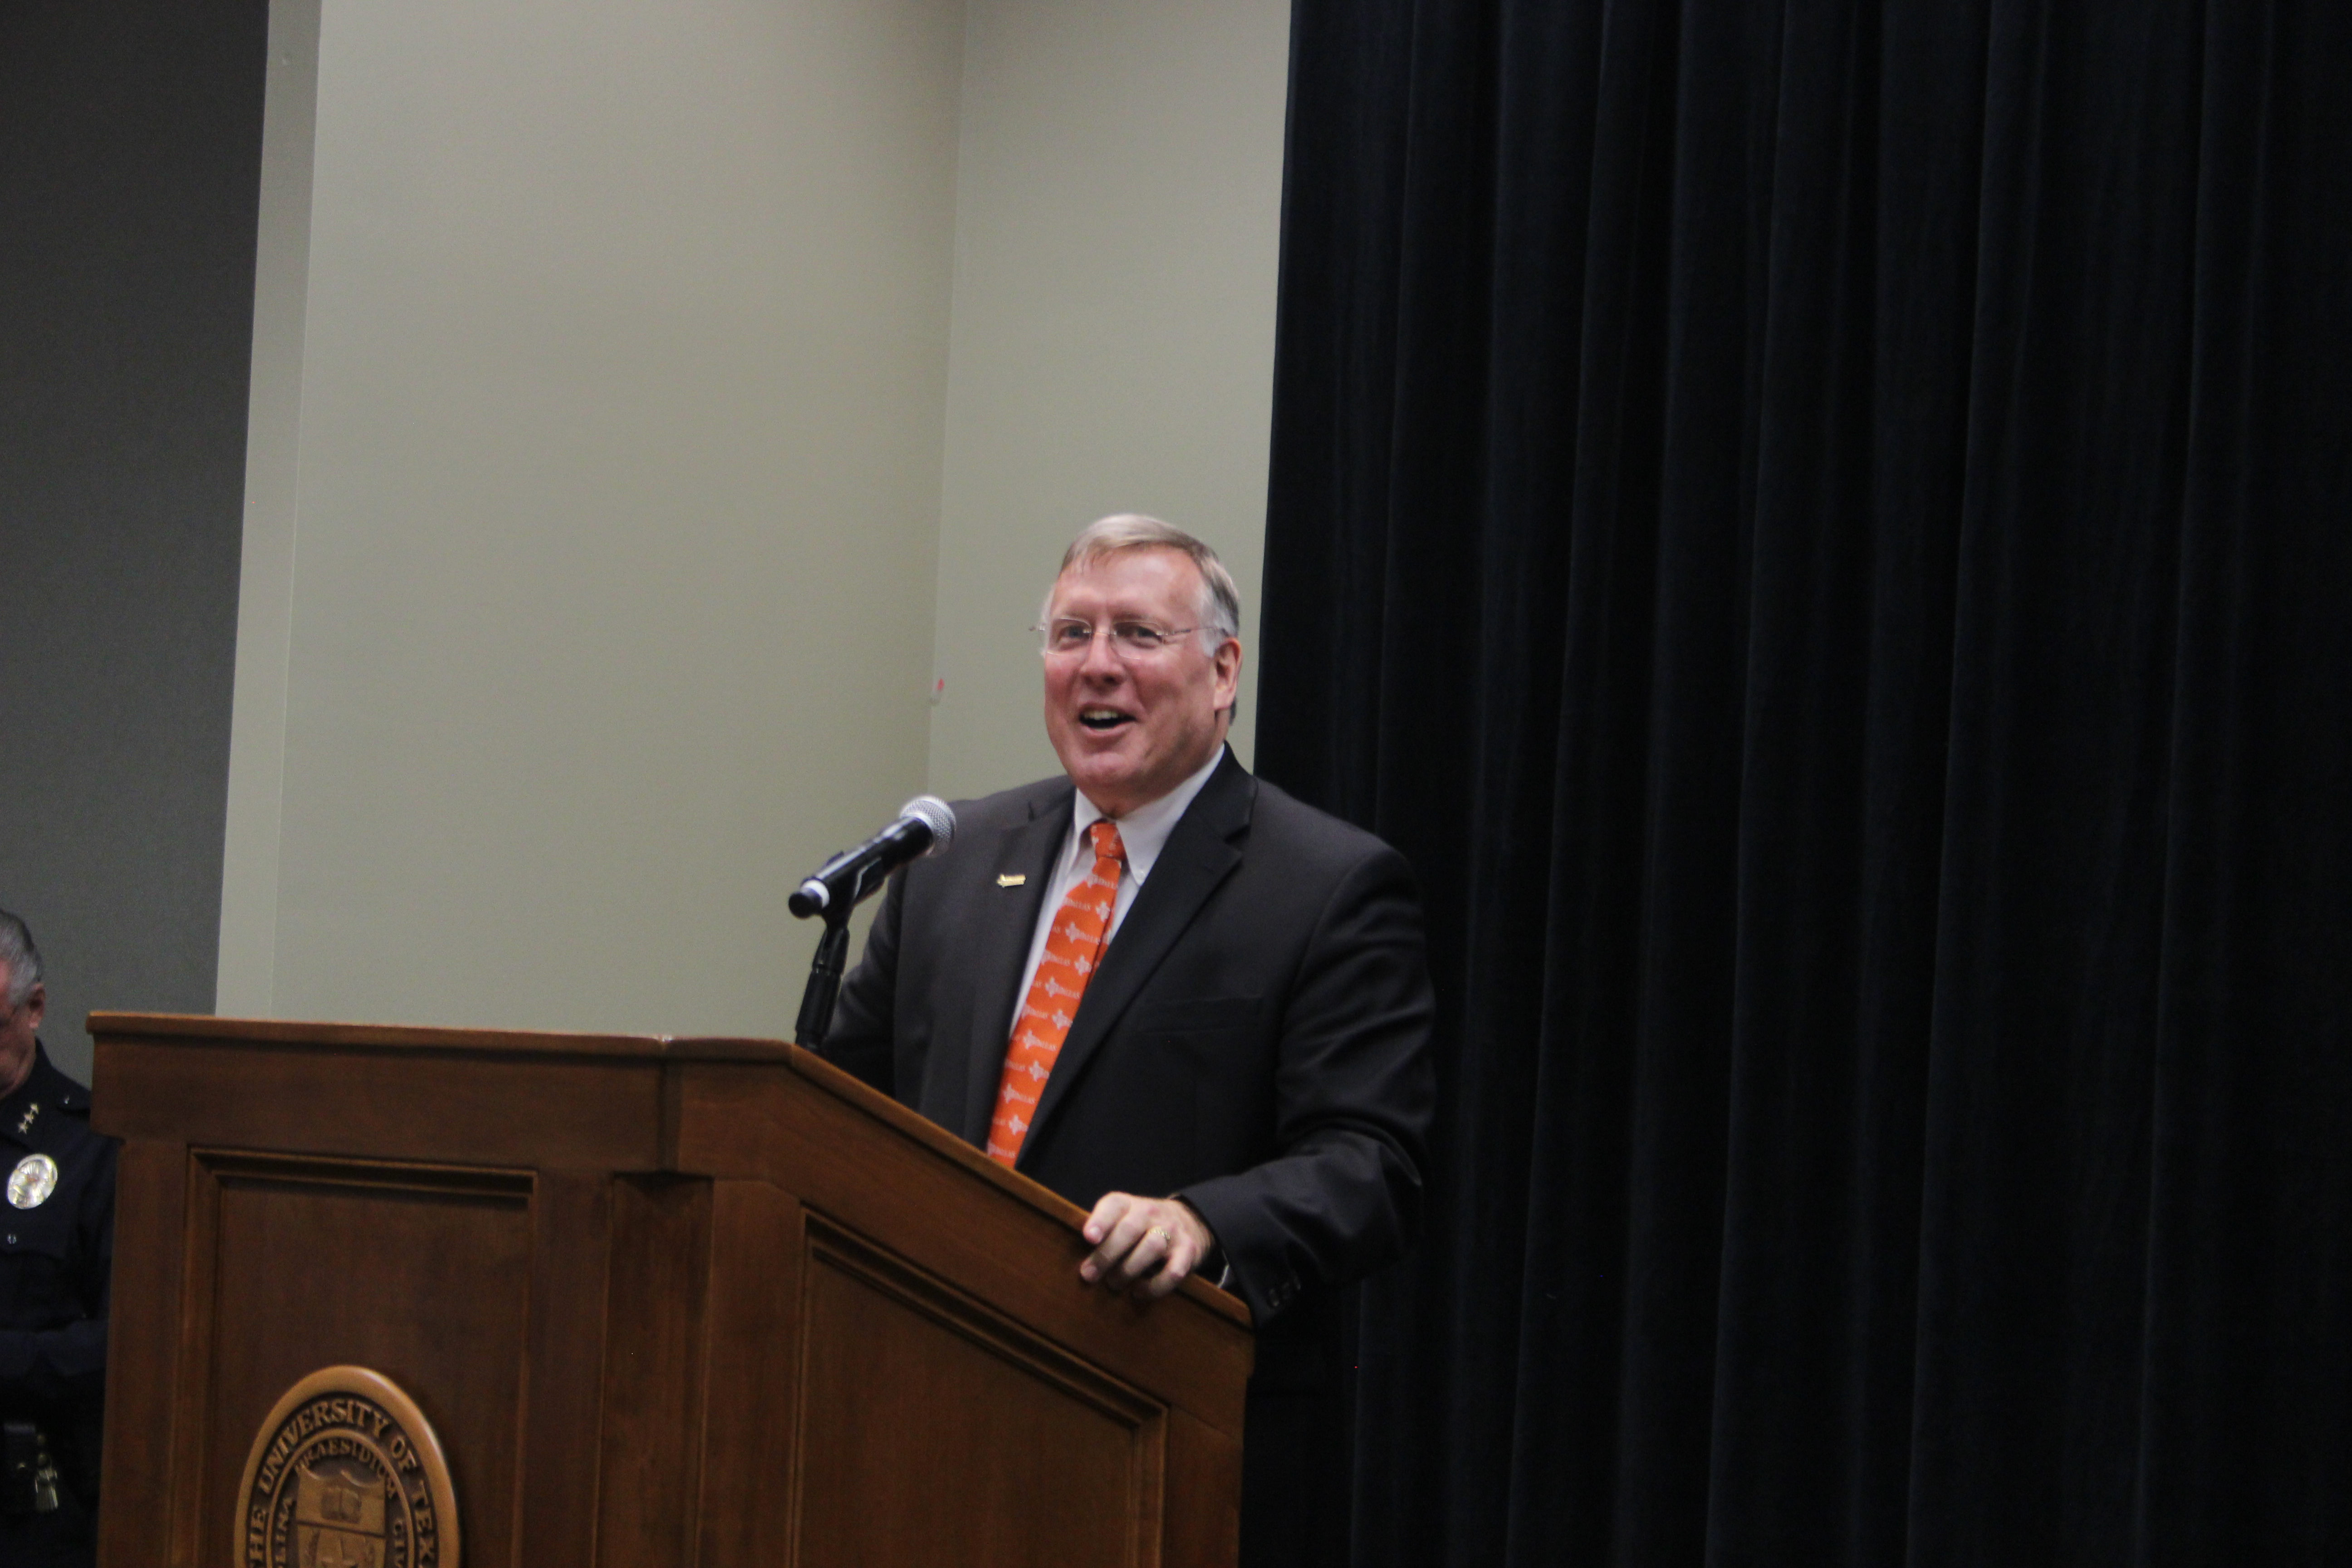 New university president makes first public appearance